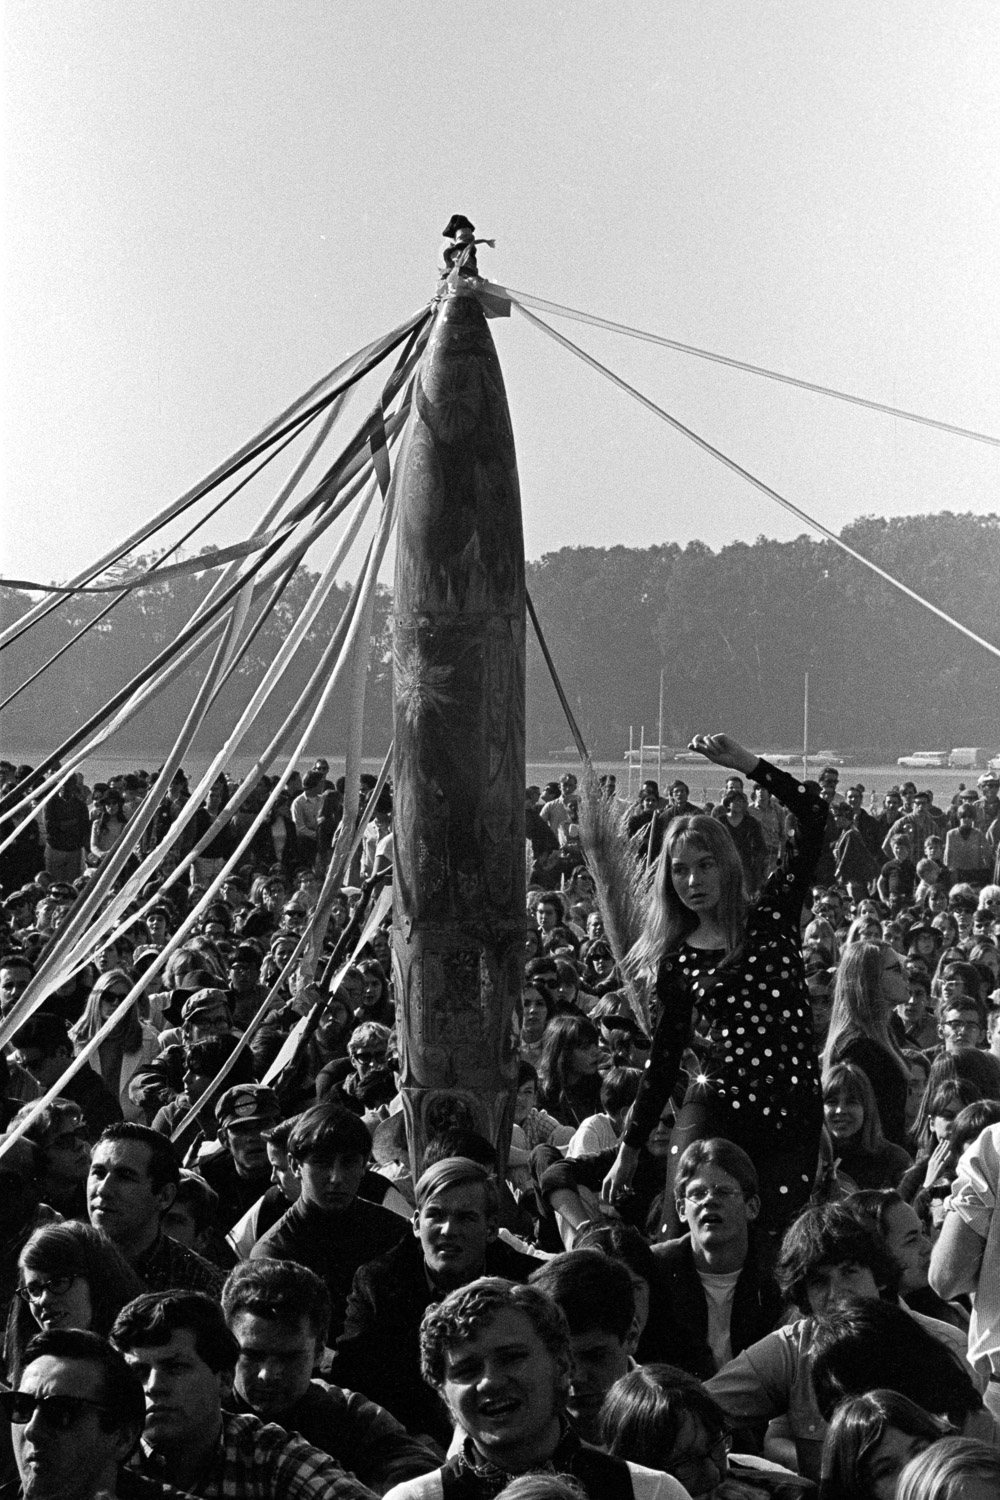 A bomb casing became a maypole. It was the Human Be-In approach to turning swords into ploughshares.